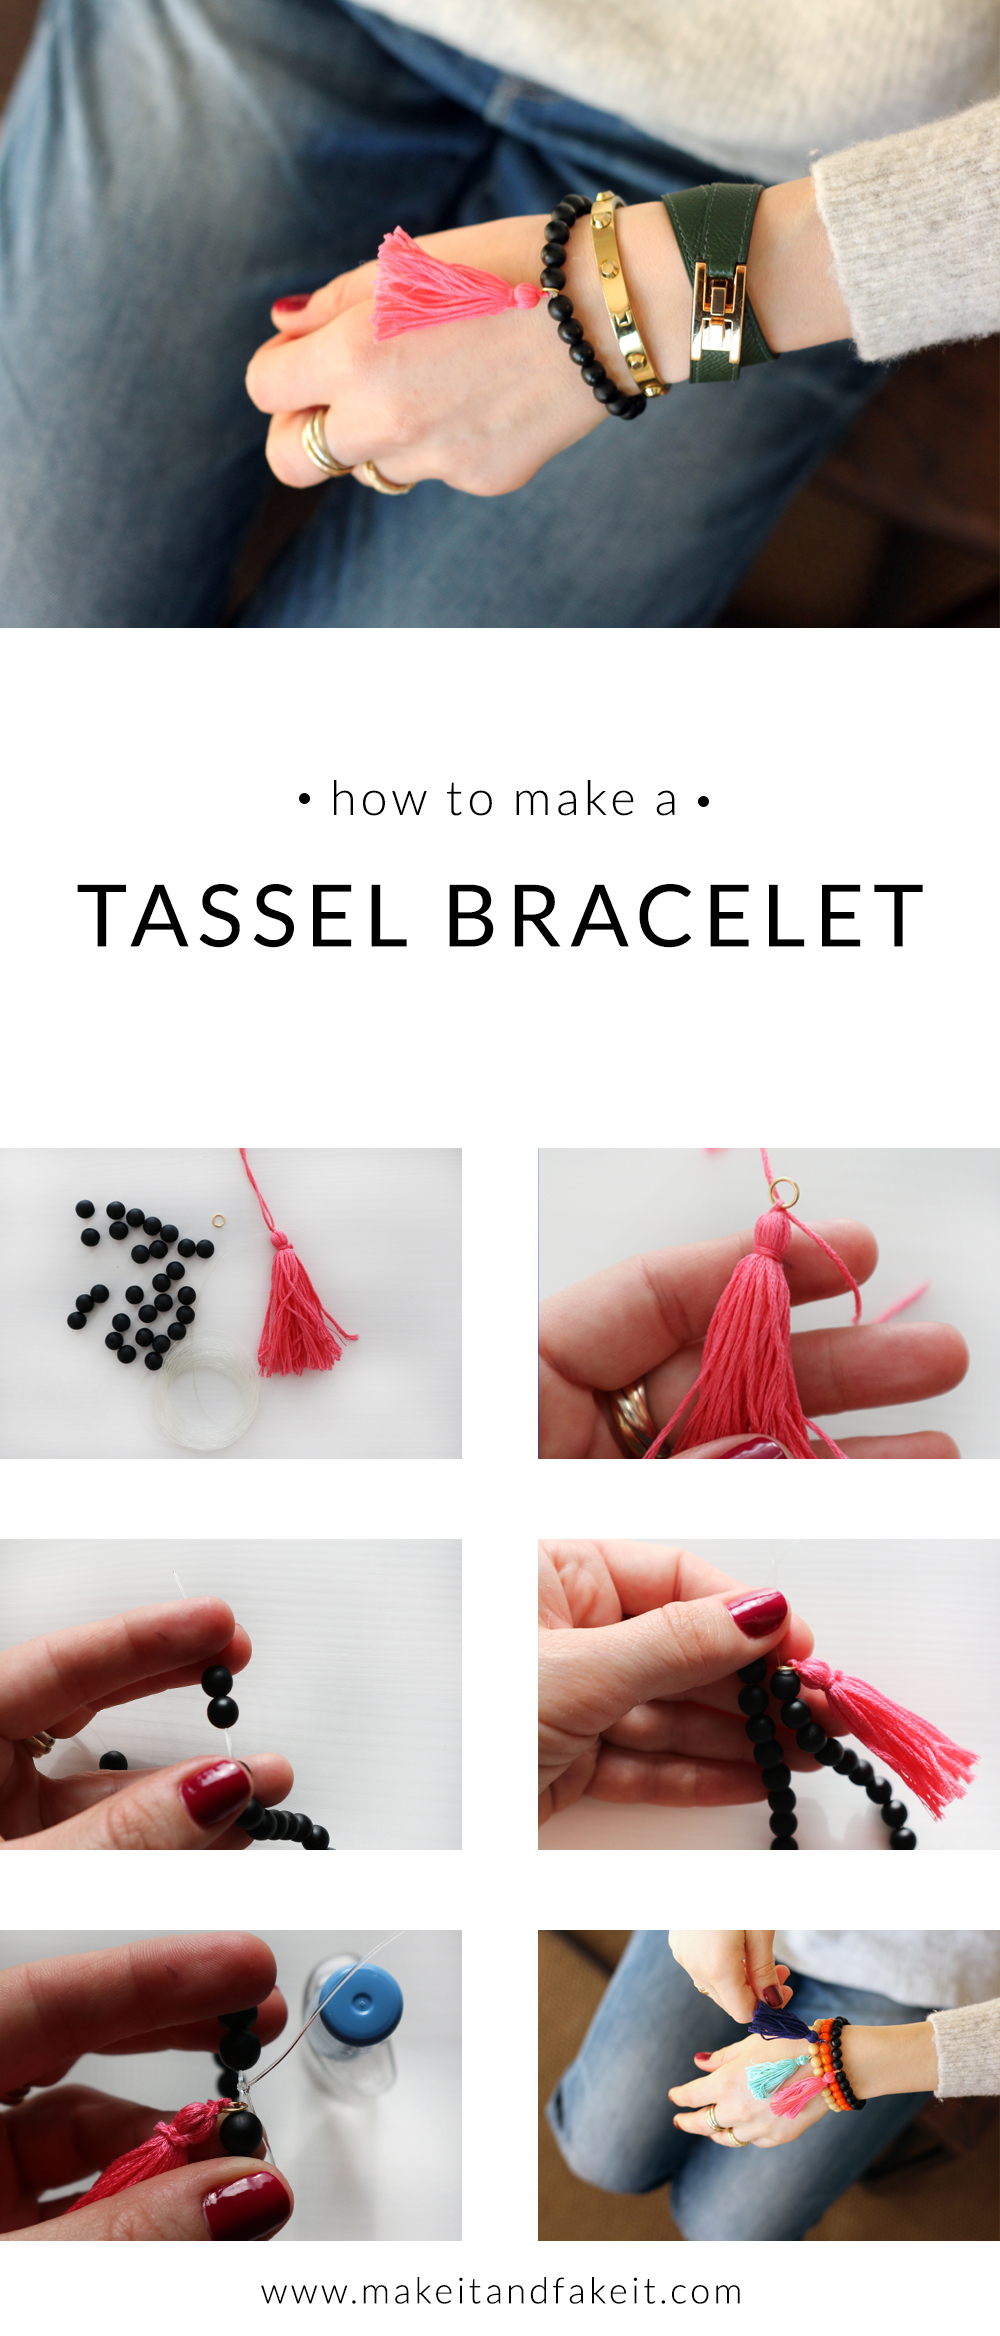 Pinterest graphic for how to make a tassel bracelet